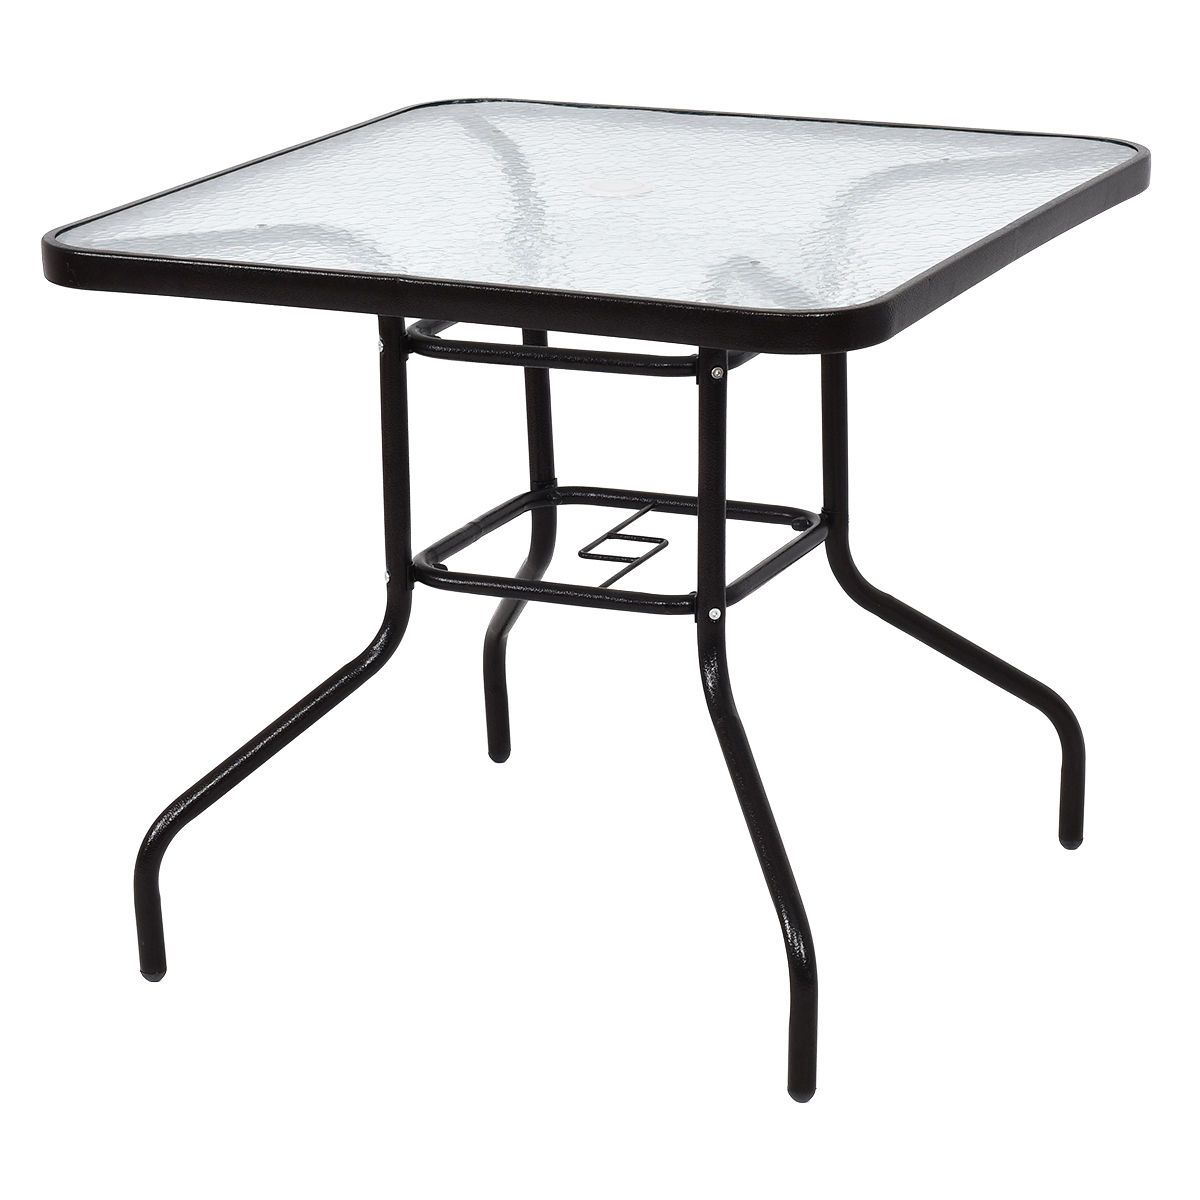 Costway: Costway 31 1/2\'\' Patio Square Table Steel Frame Dining ...